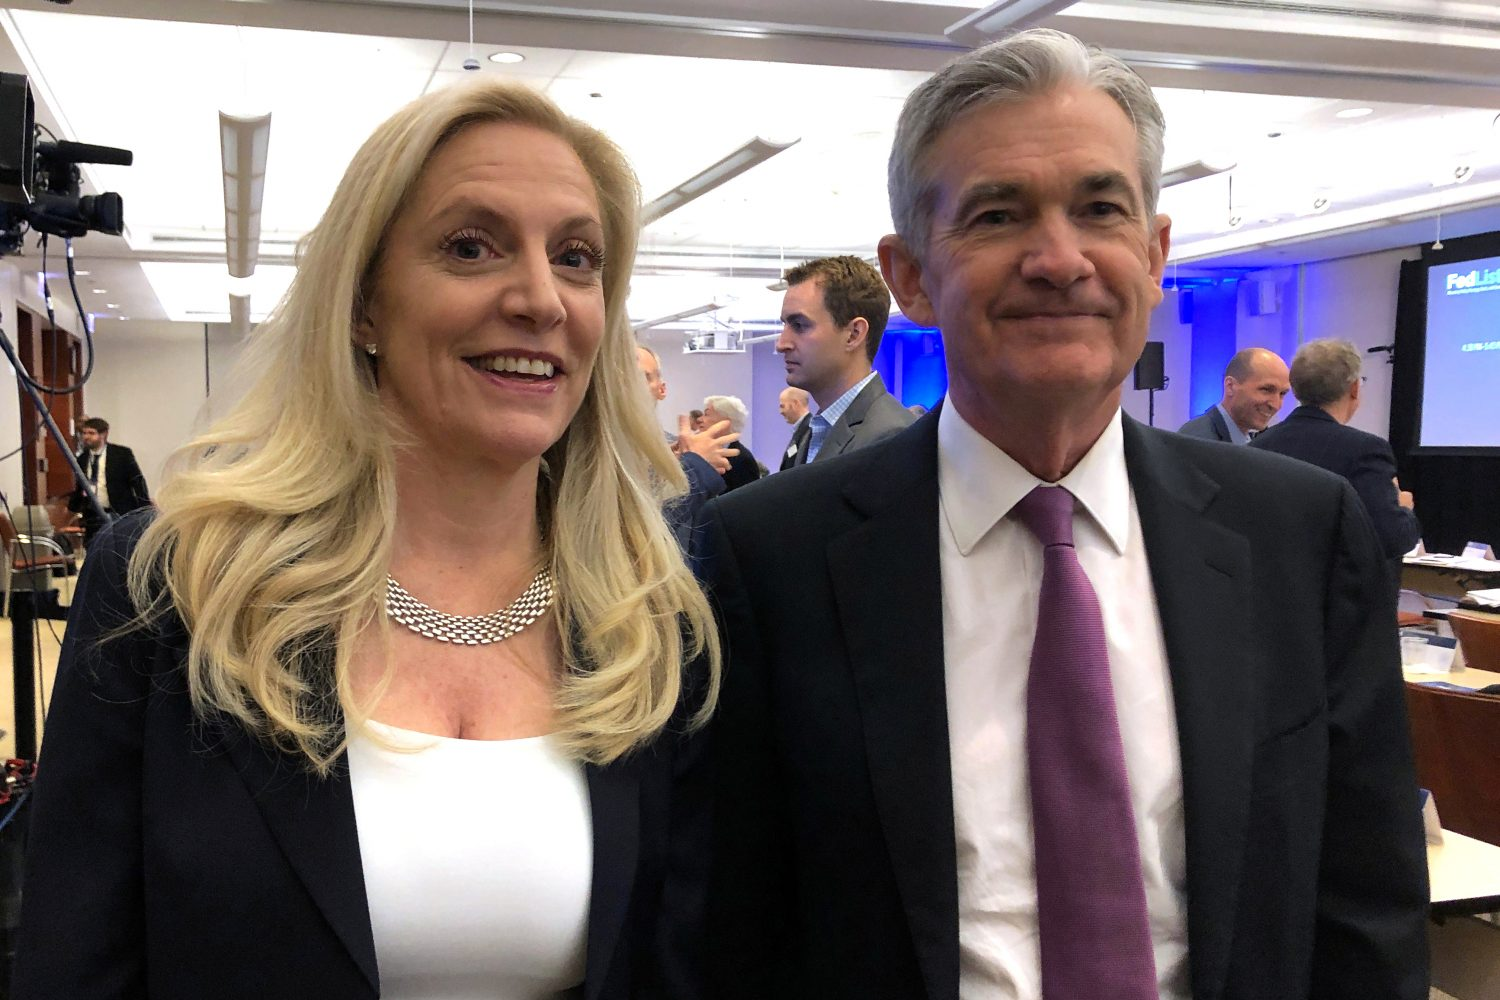 FILE PHOTO: Federal Reserve Chairman Jerome Powell poses for photos with Fed Governor Lael Brainard (L) at the Federal Reserve Bank of Chicago, in Chicago, Illinois, U.S., June 4, 2019. REUTERS/Ann Saphir